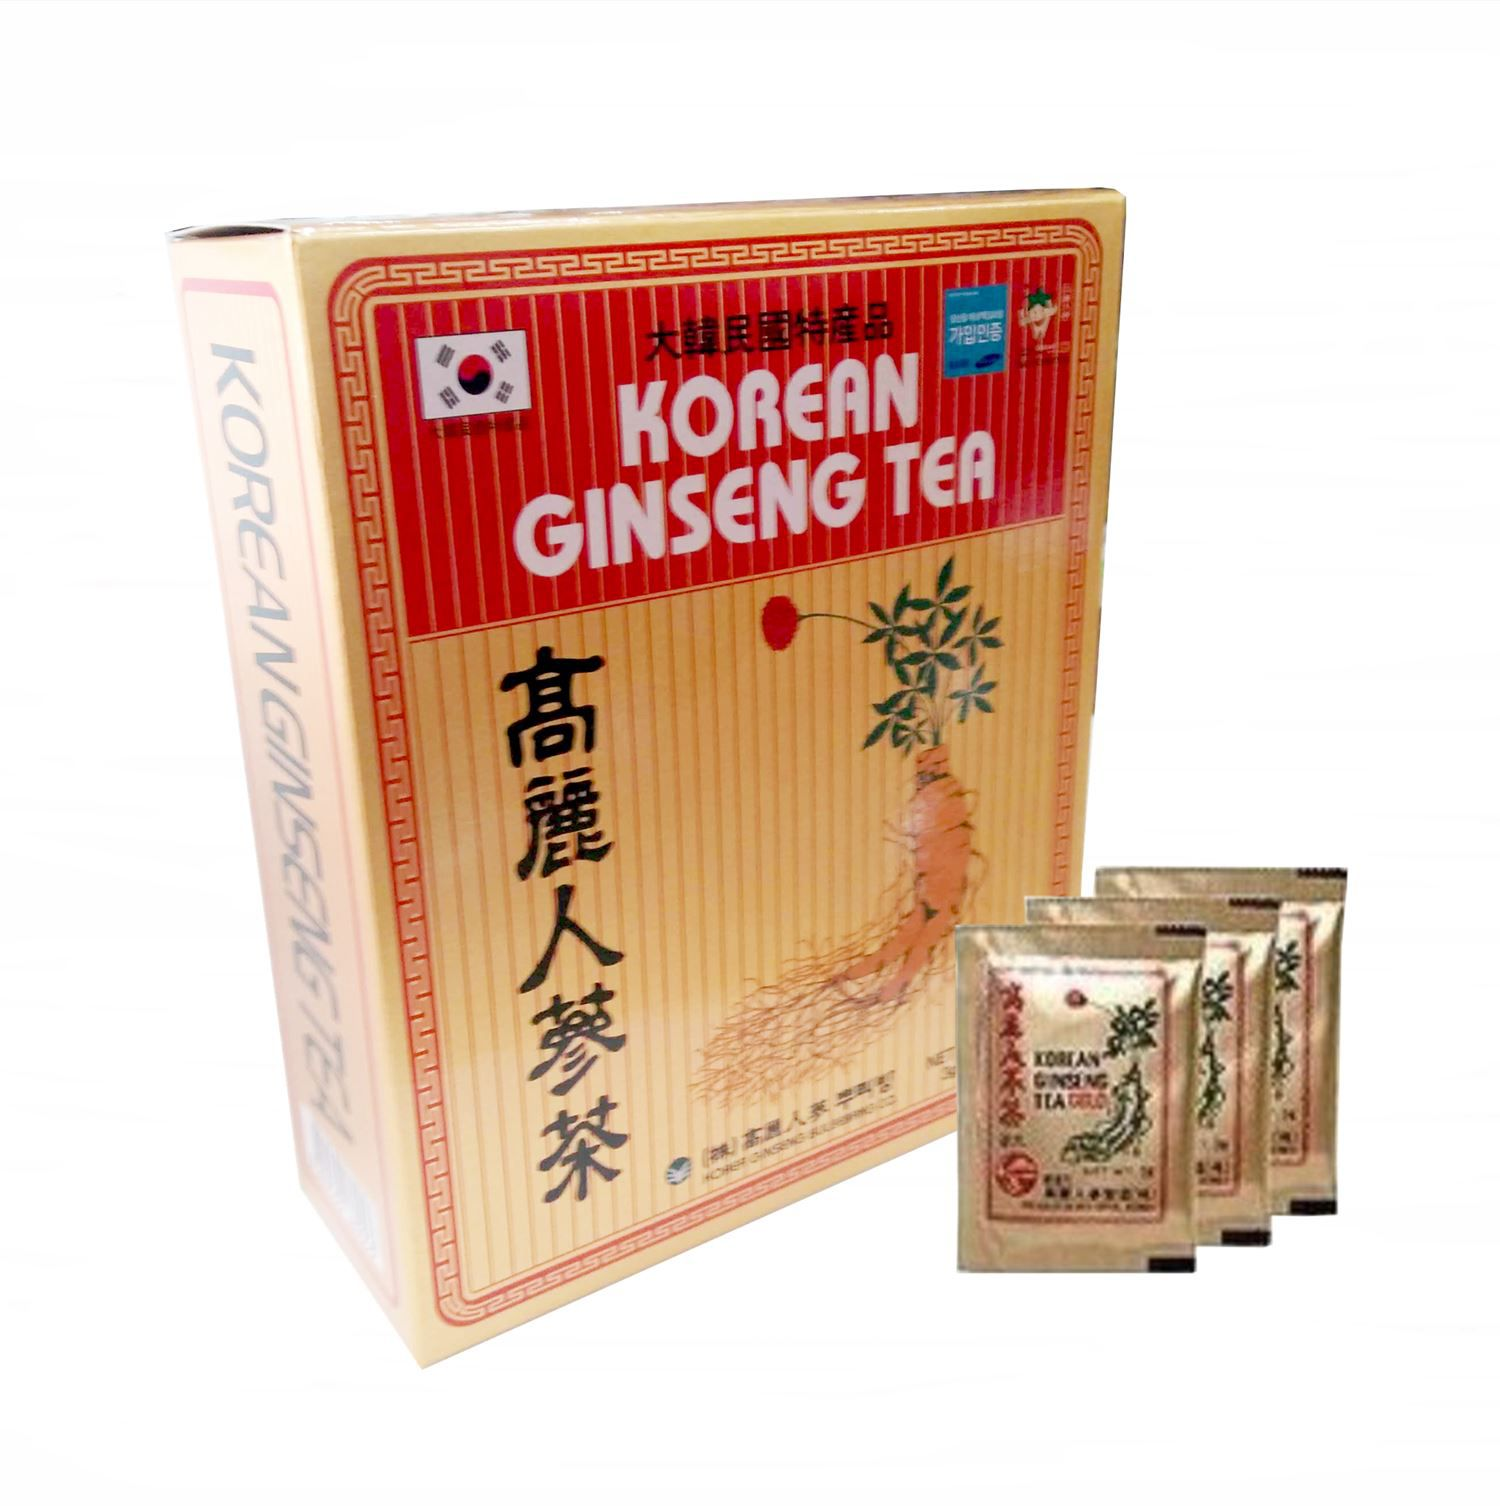 Korean Ginseng Tea Chá Coreano 50 Unid Original